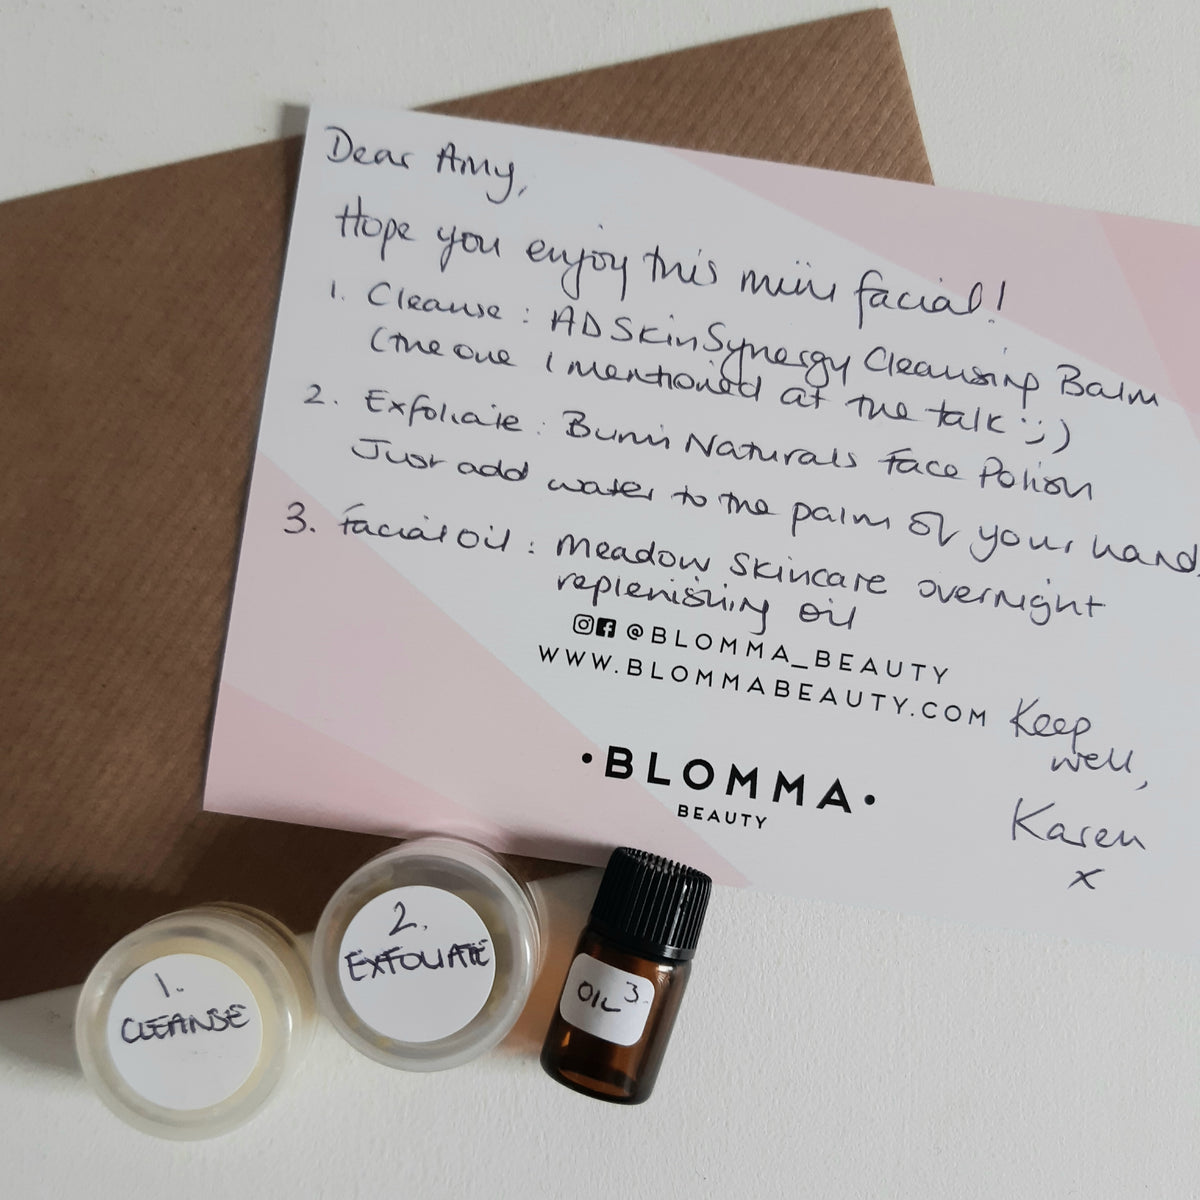 Try before you buy beauty products and a letter from Blomma Beauty.